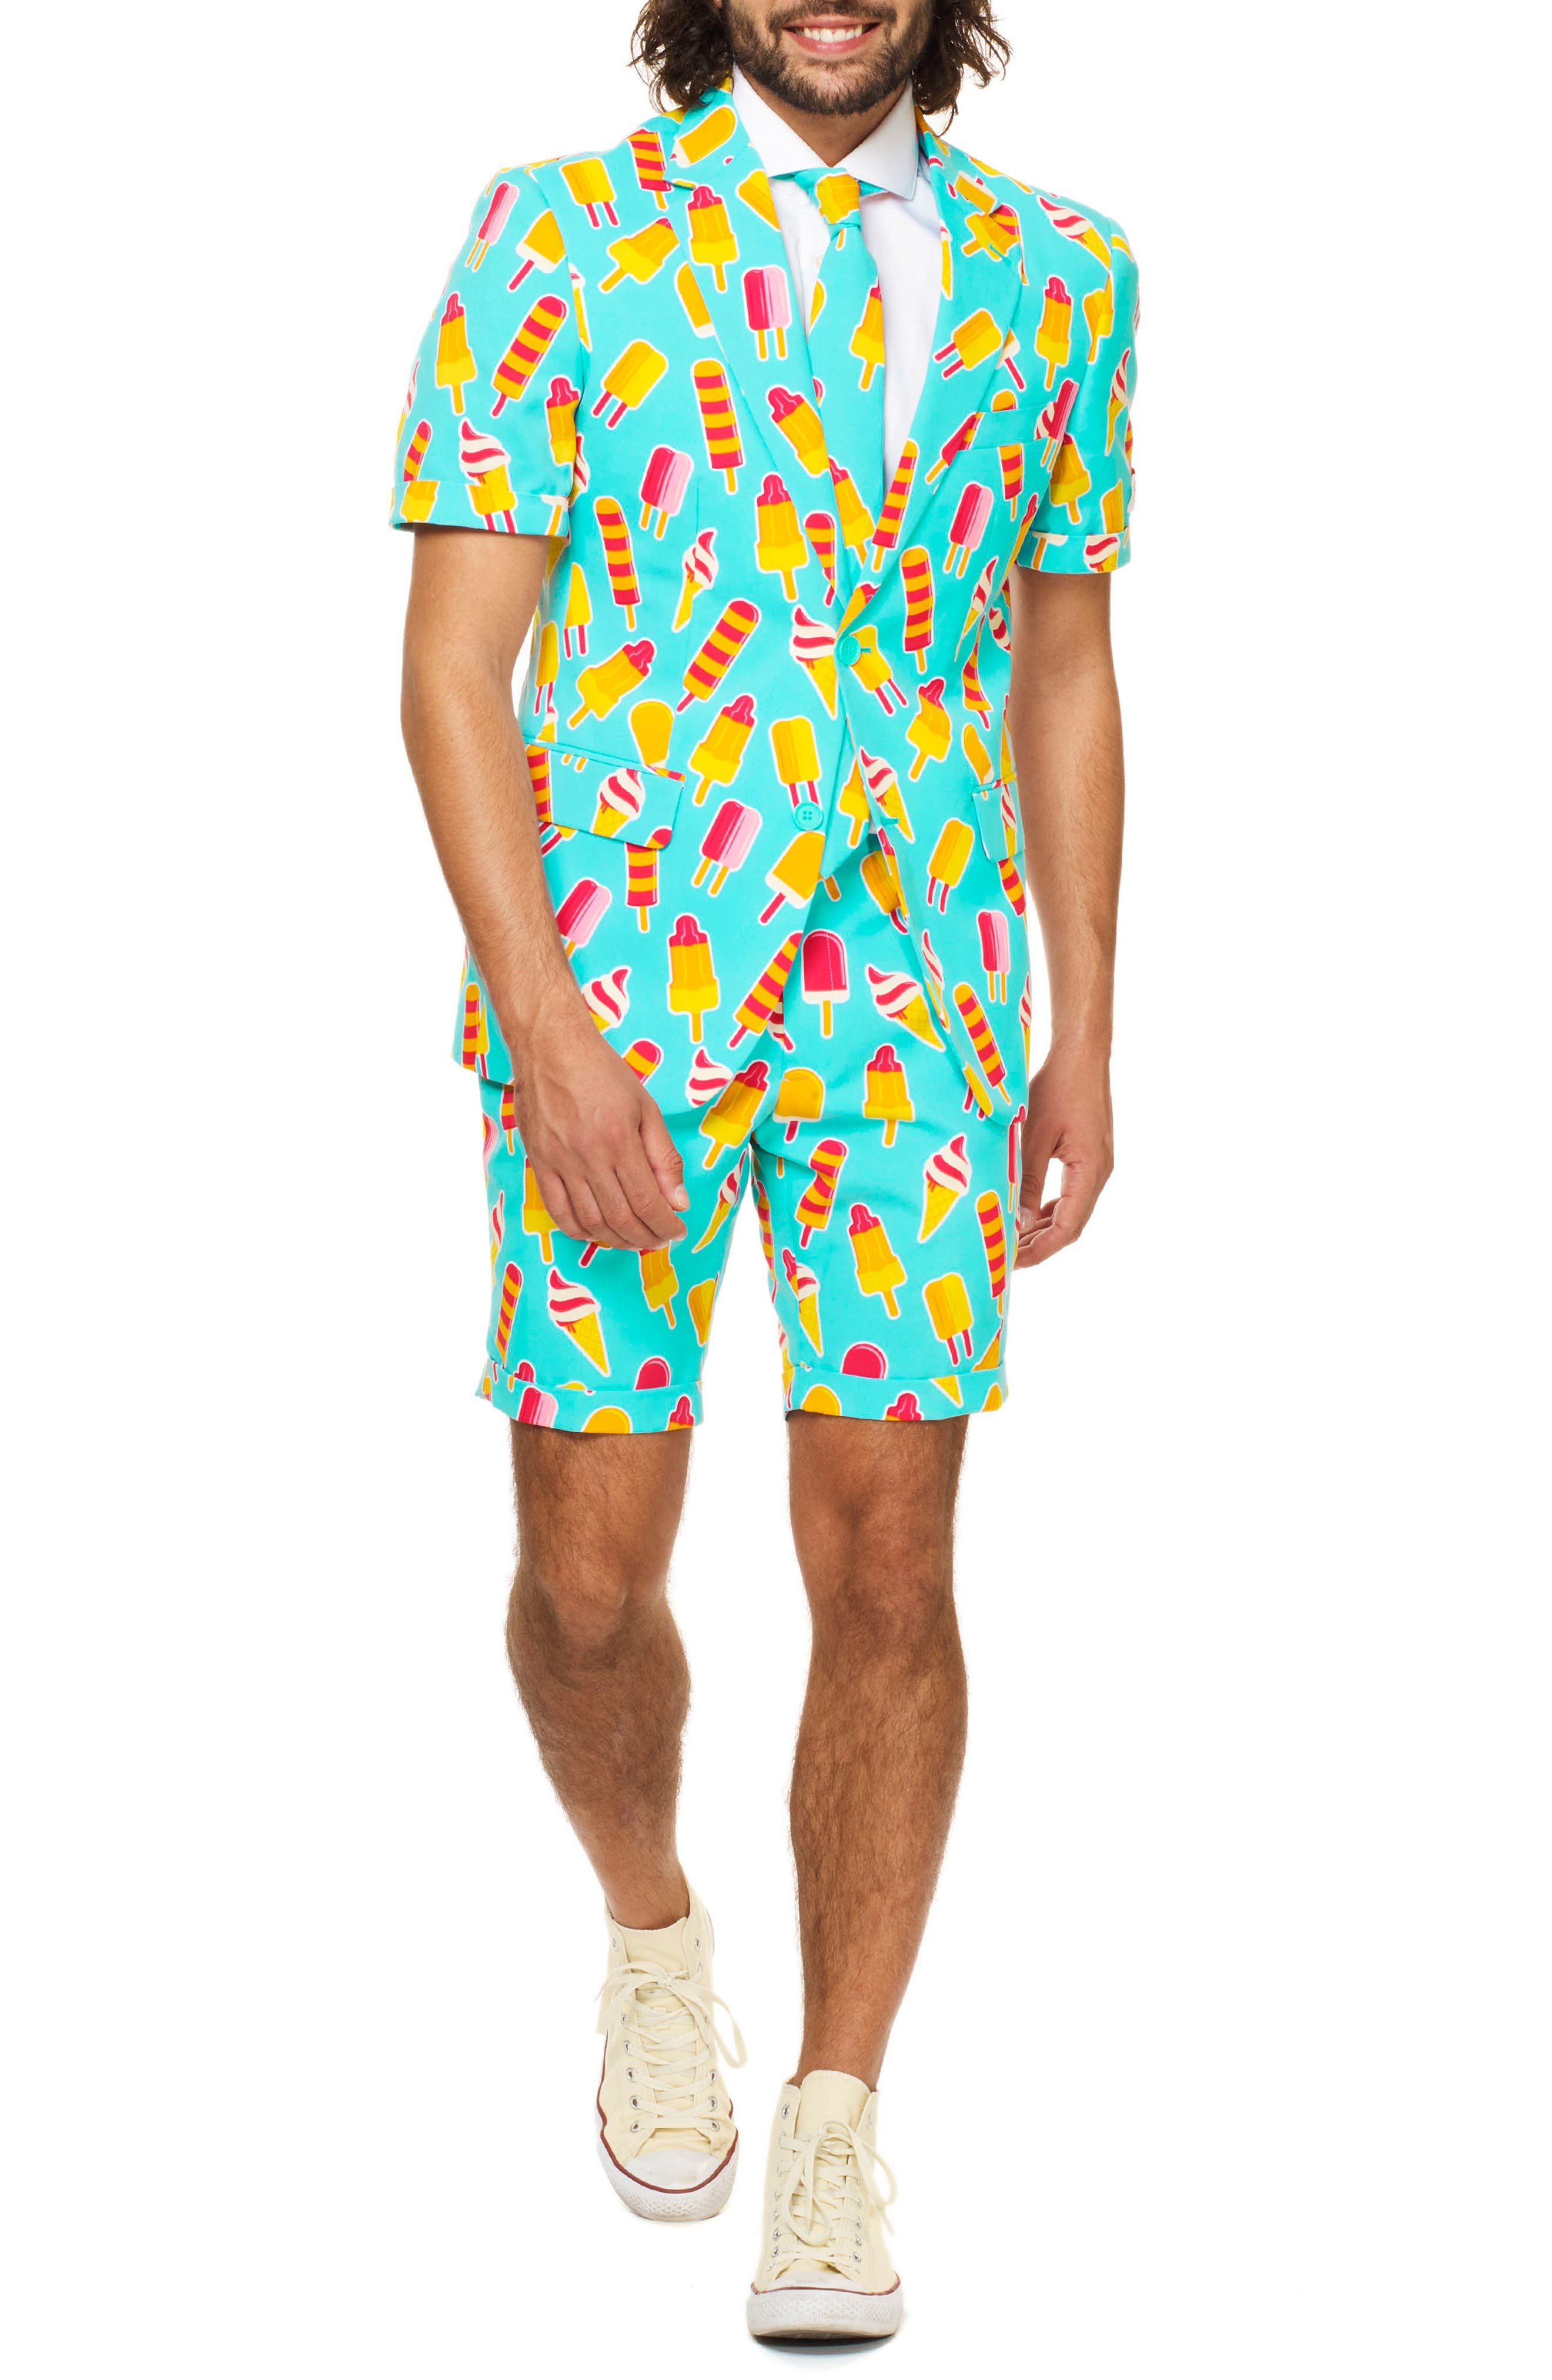 Main Image - OppoSuits Summer Cool Cones Trim Fit Two-Piece Short Suit with Tie